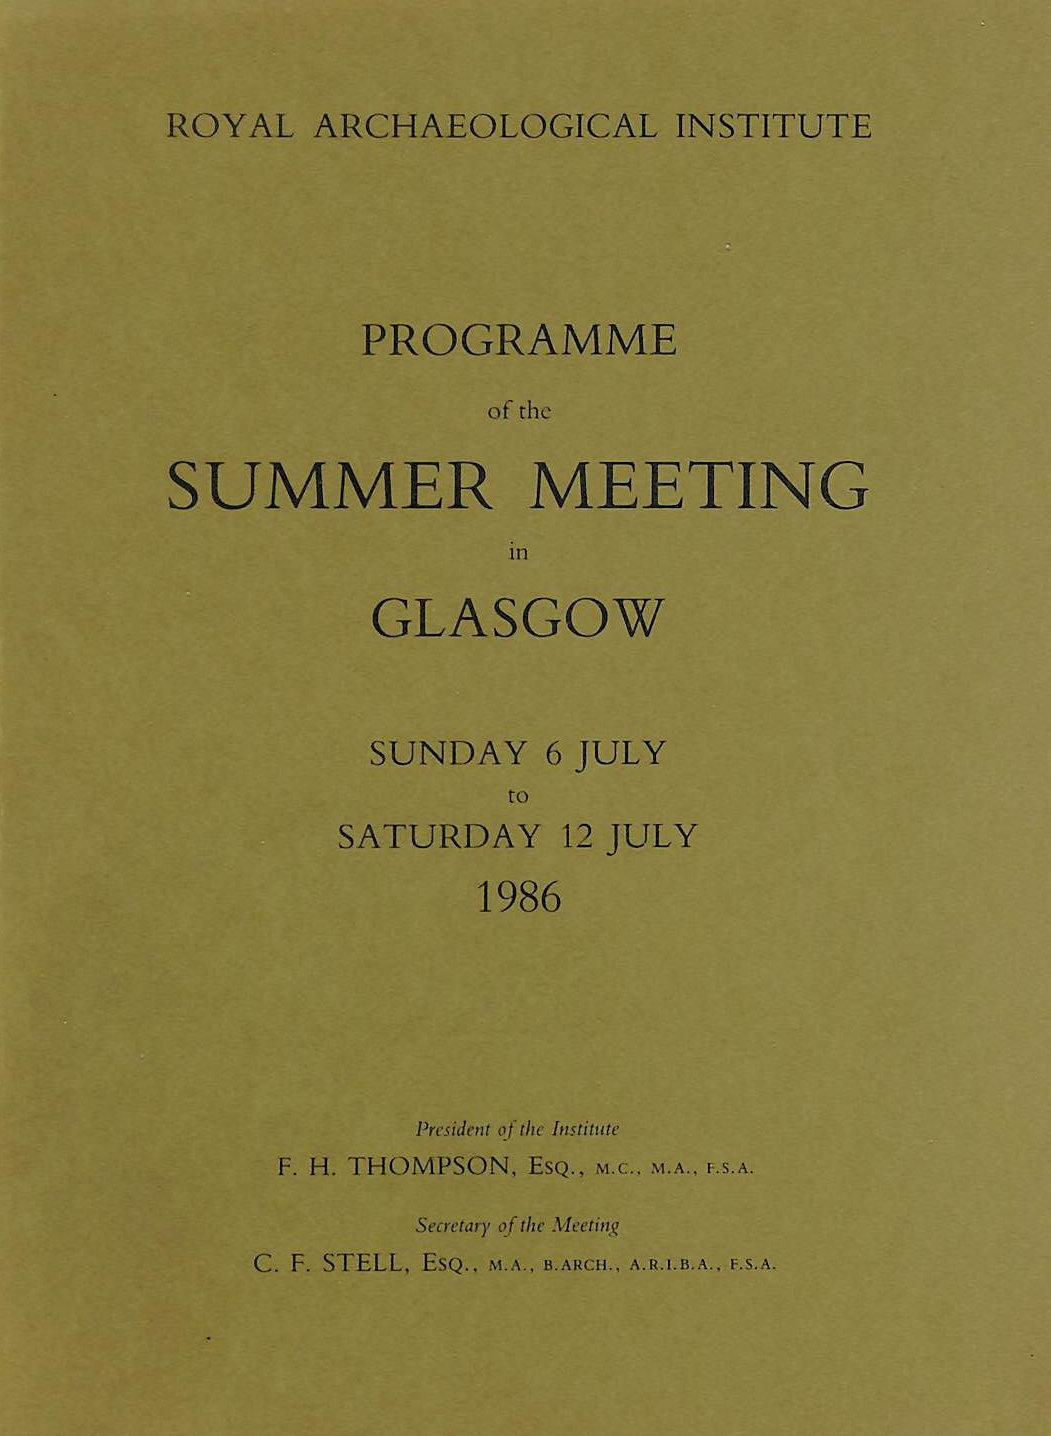 Image for Programme of the Summer Meeting at Glasgow, Sunday 6 July to Saturday 12 July 1986